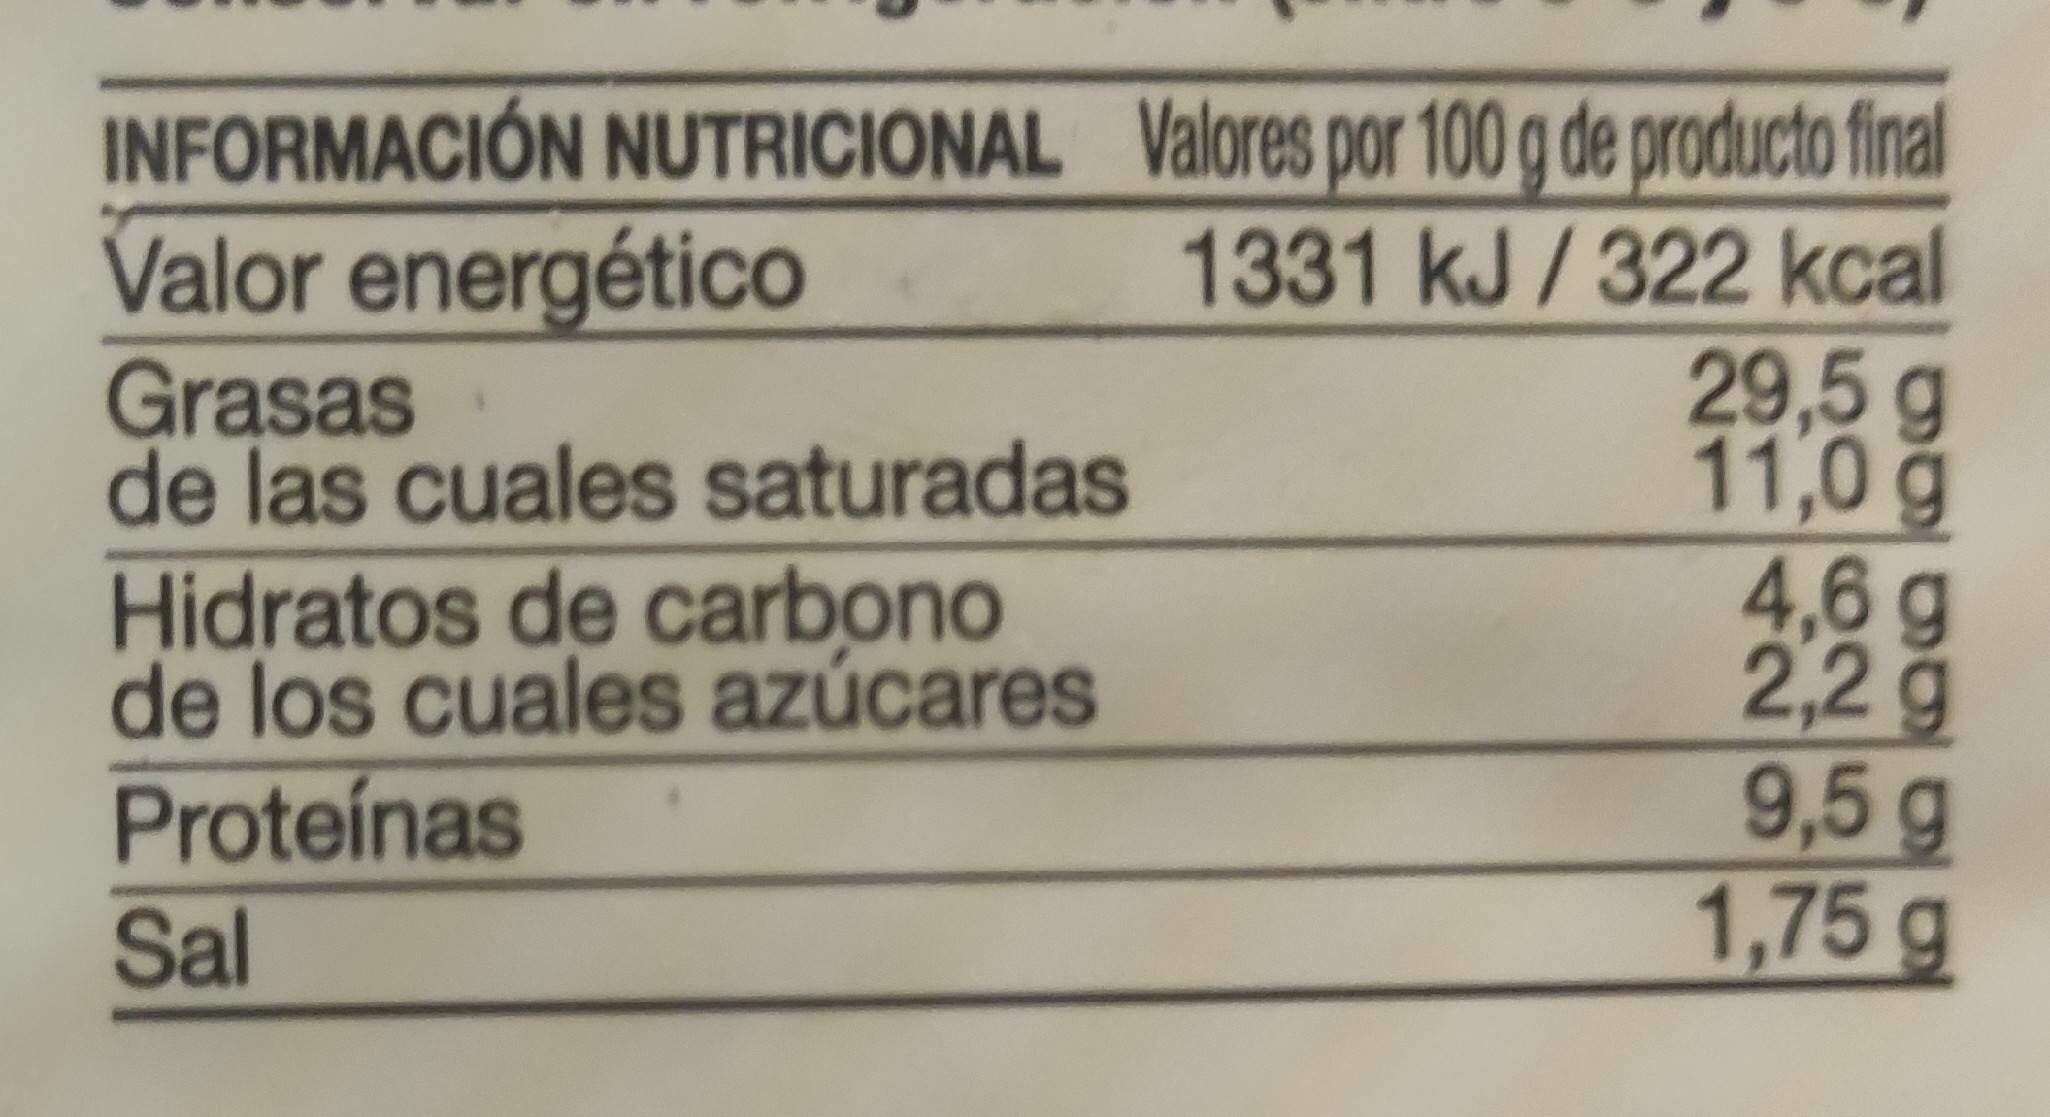 Paté finas hierbas - Nutrition facts